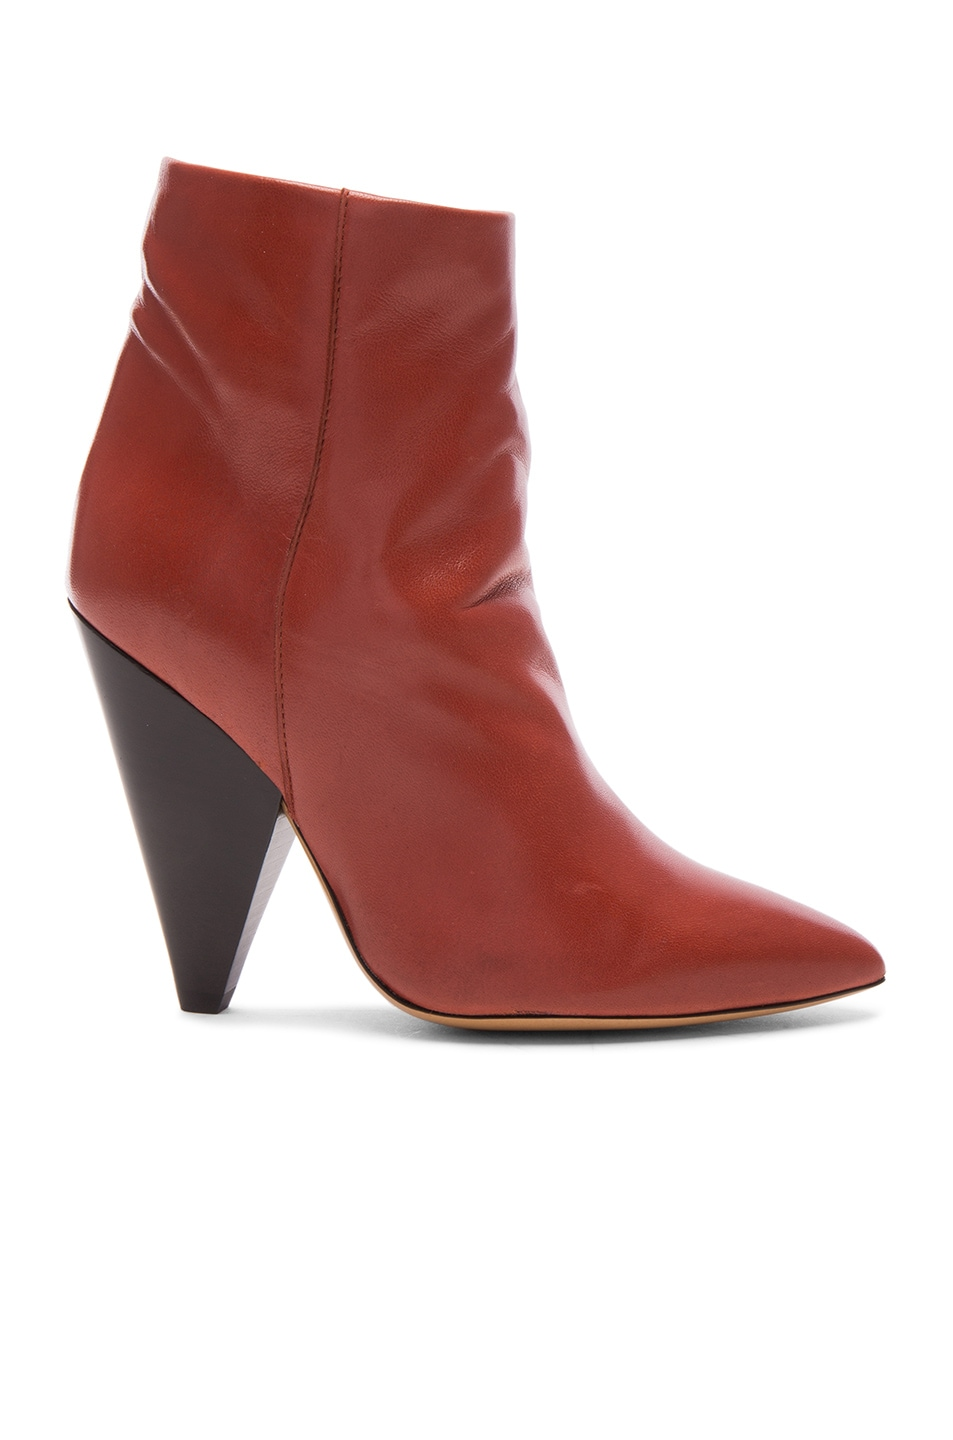 Image 1 of Isabel Marant Leather Leydoni Booties in Rust